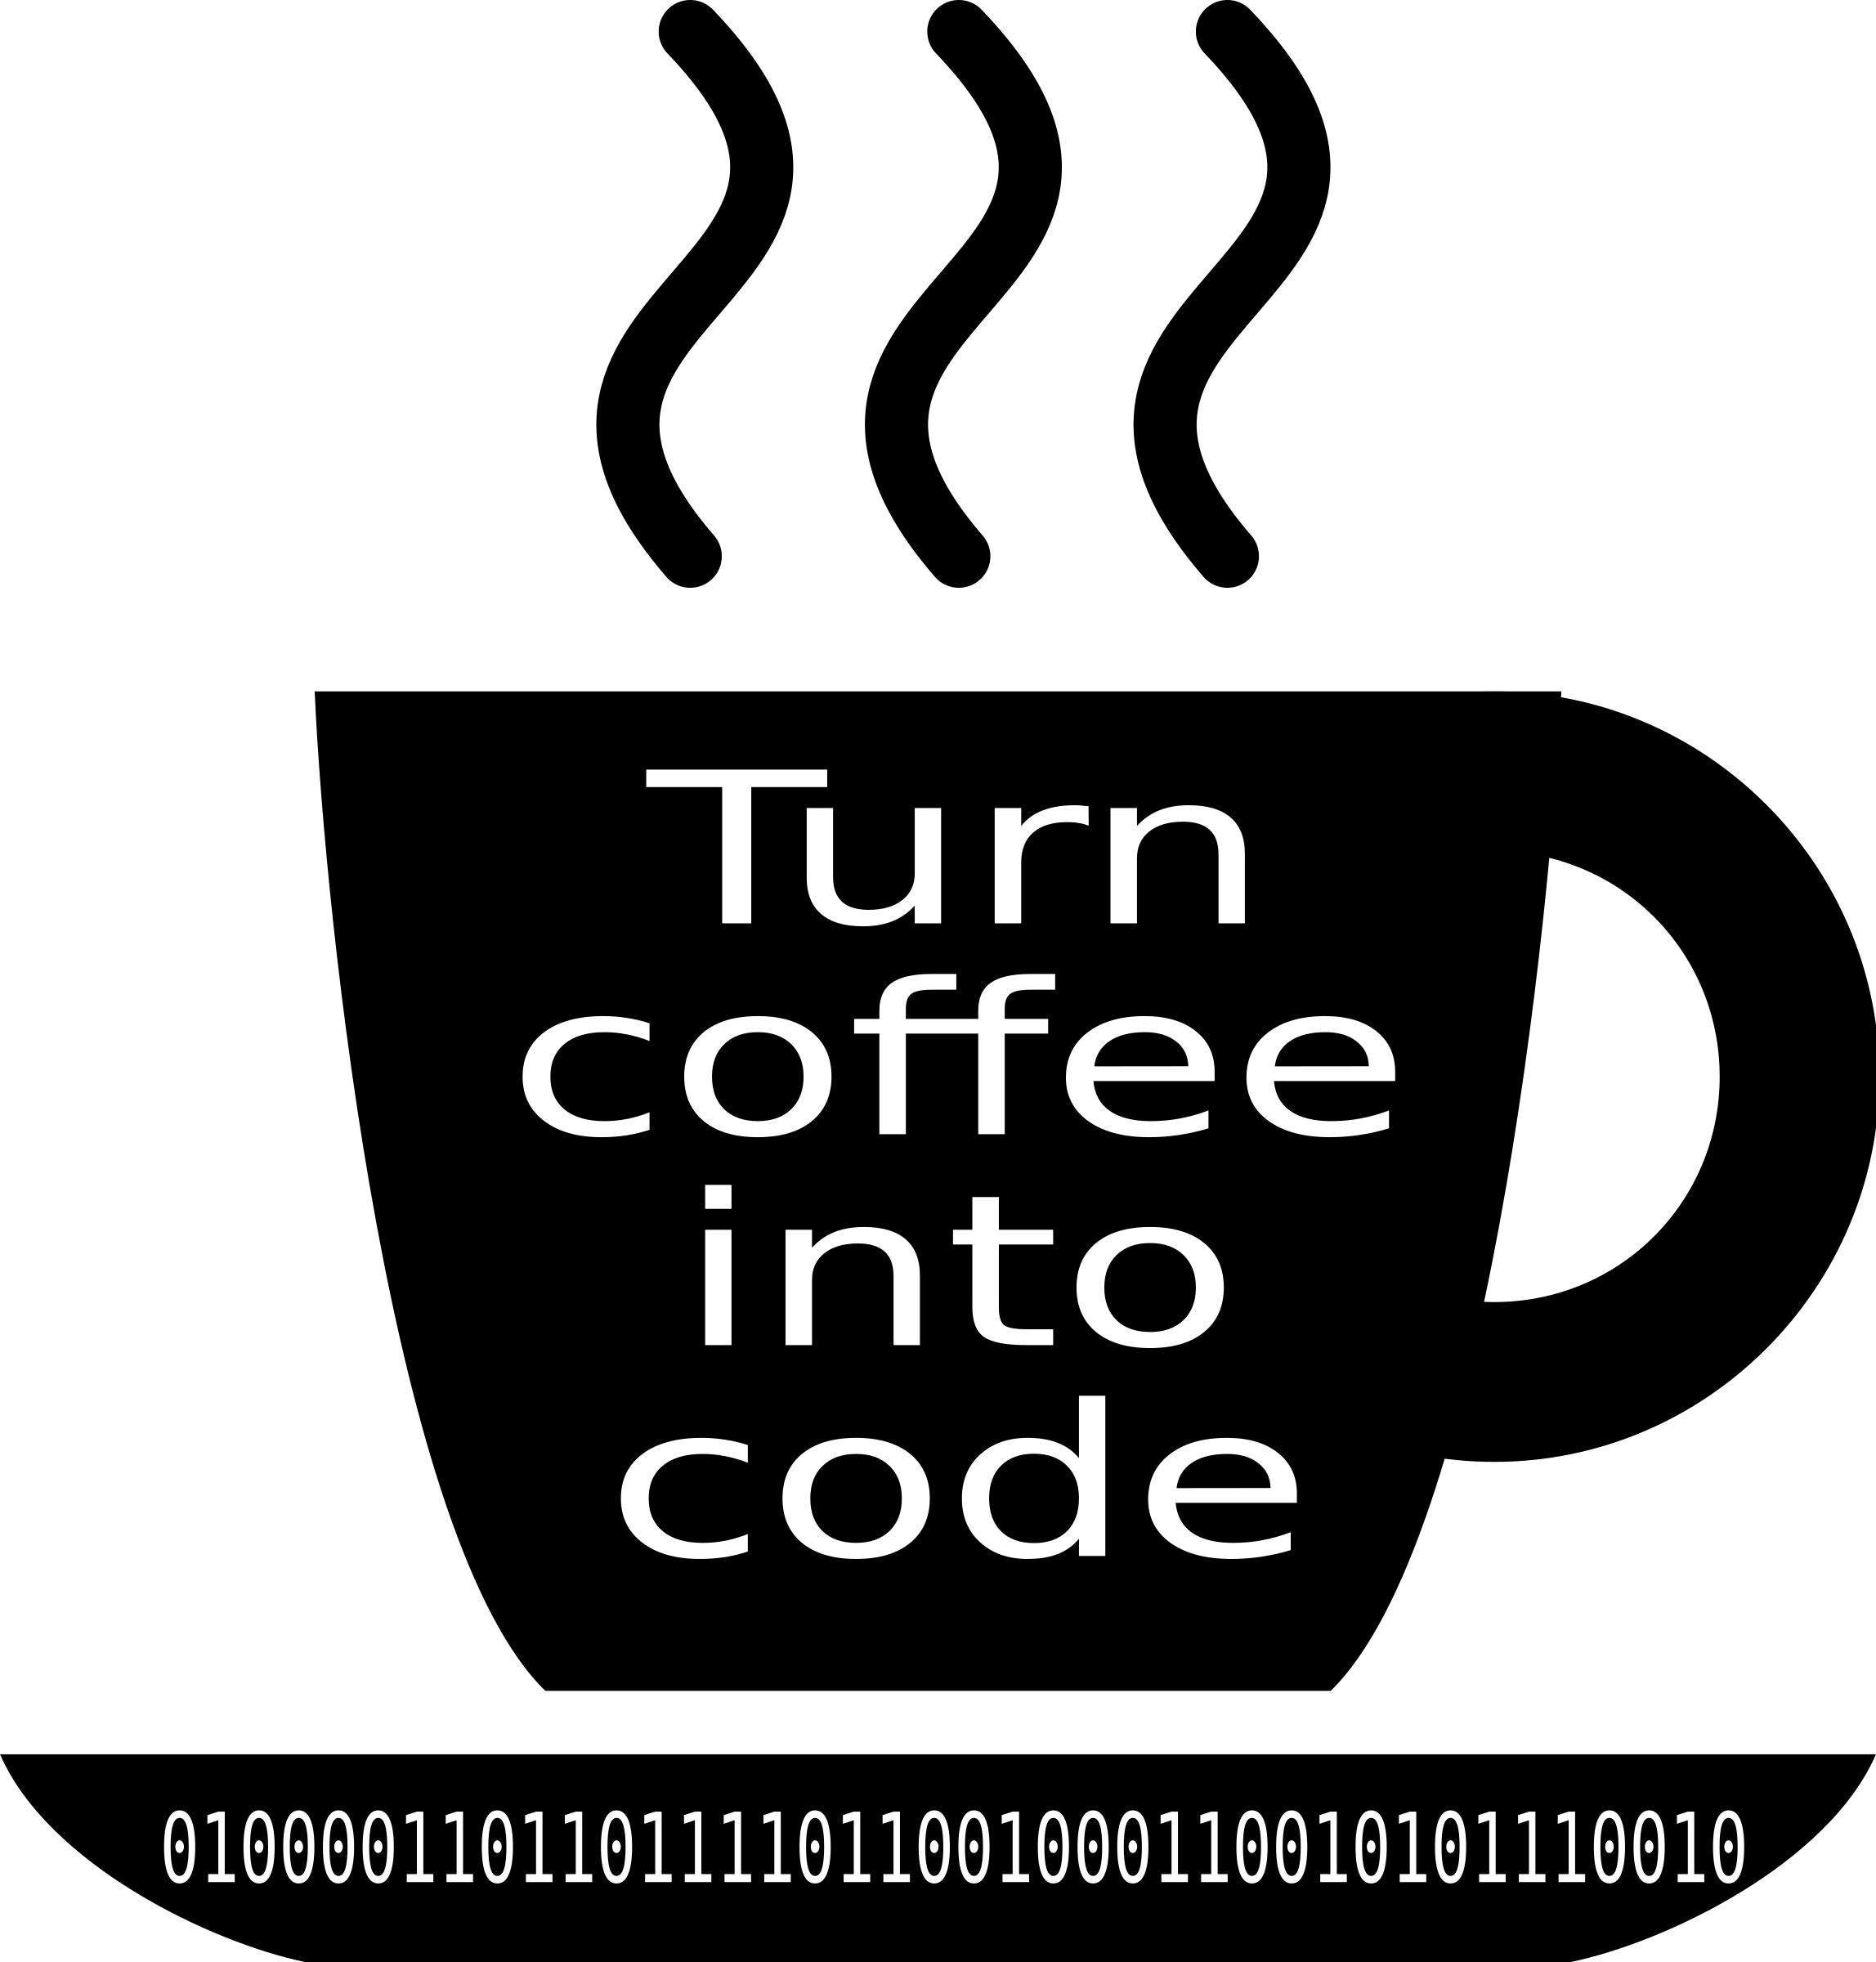 Turn coffee into code by Zorin95670